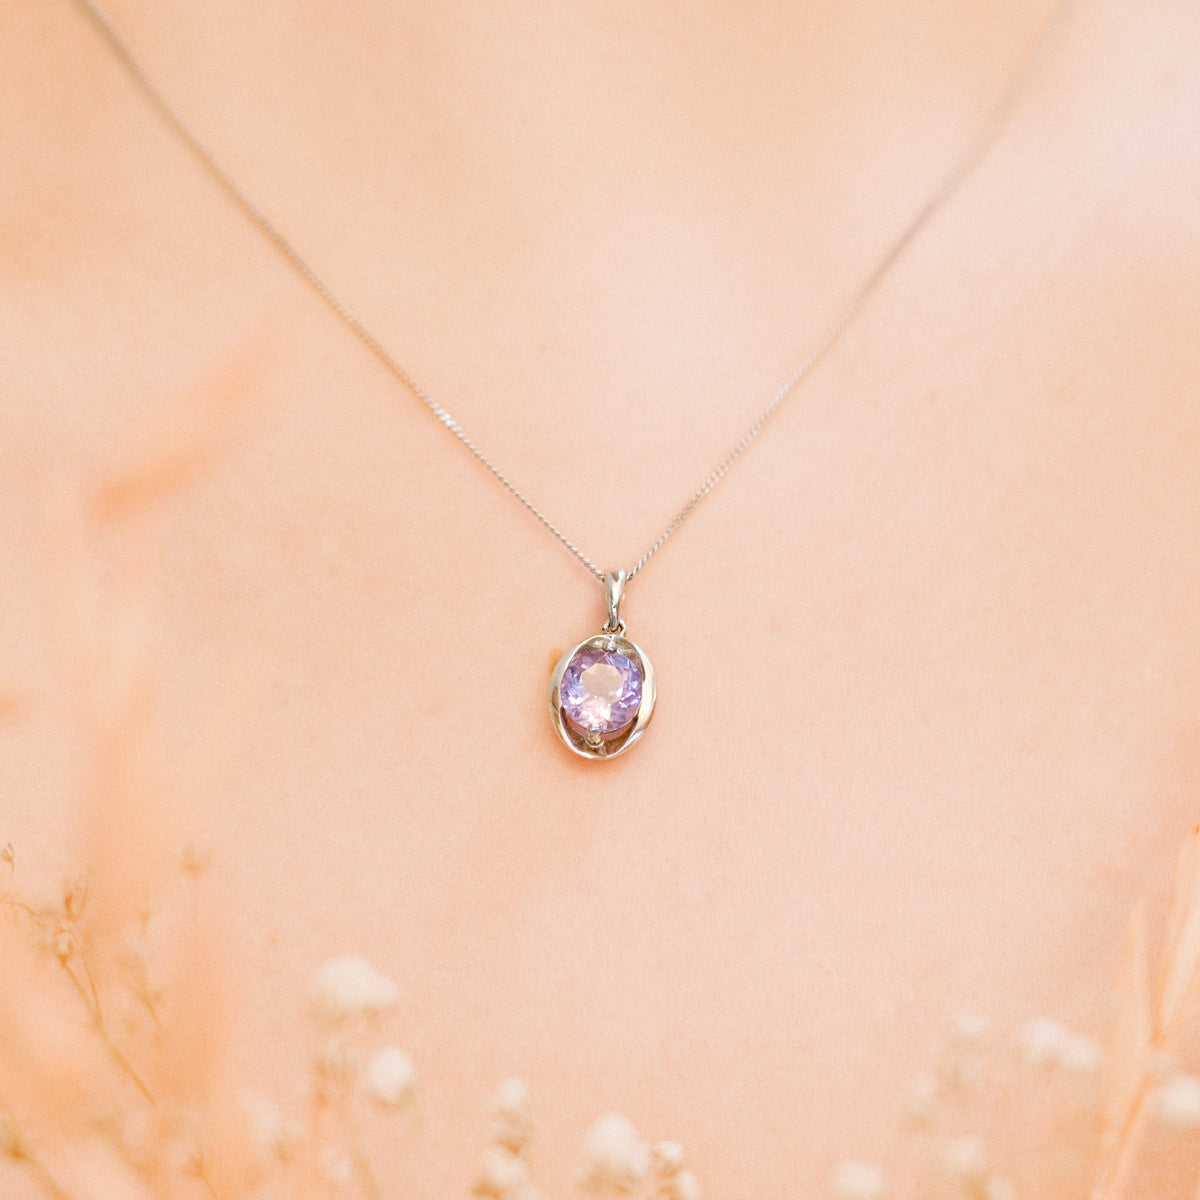 Picture of the oval silver amethyst pendant necklace modelled on a person.